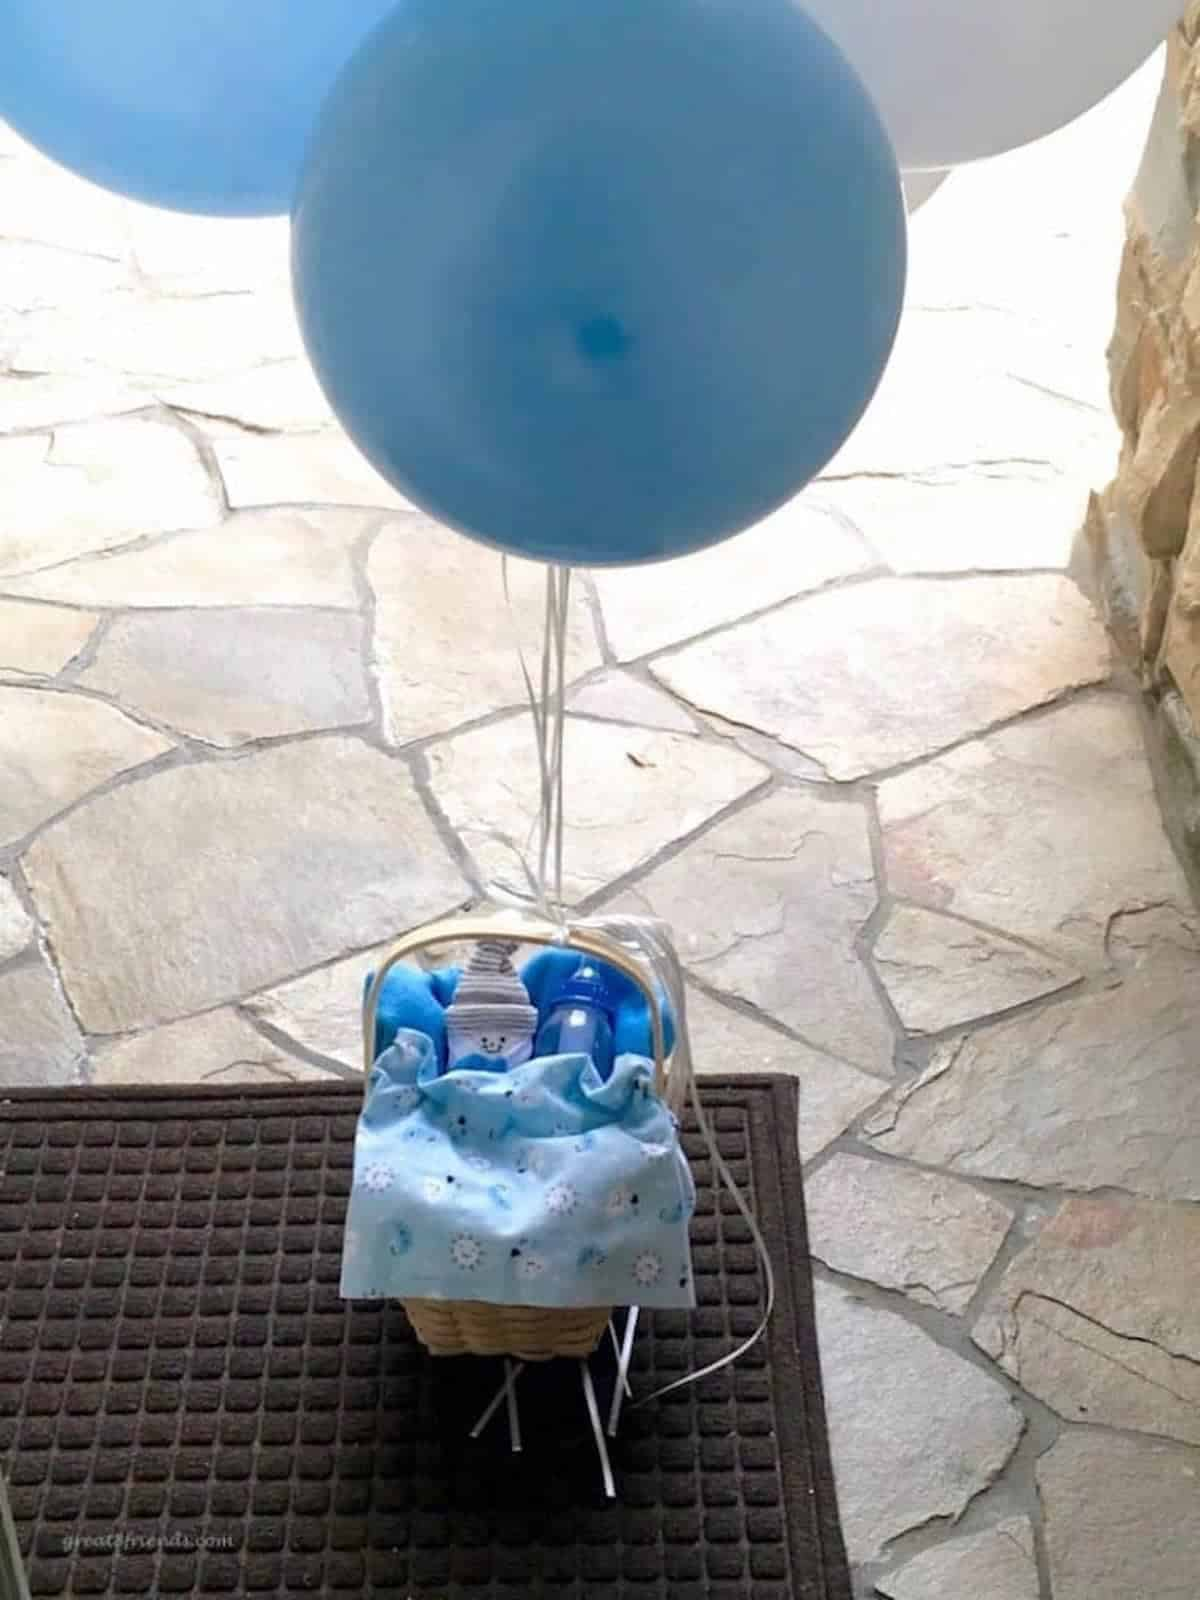 A basket with a baby bottle and a blue baby blanket on a porch with a blue balloon tied to the handle.